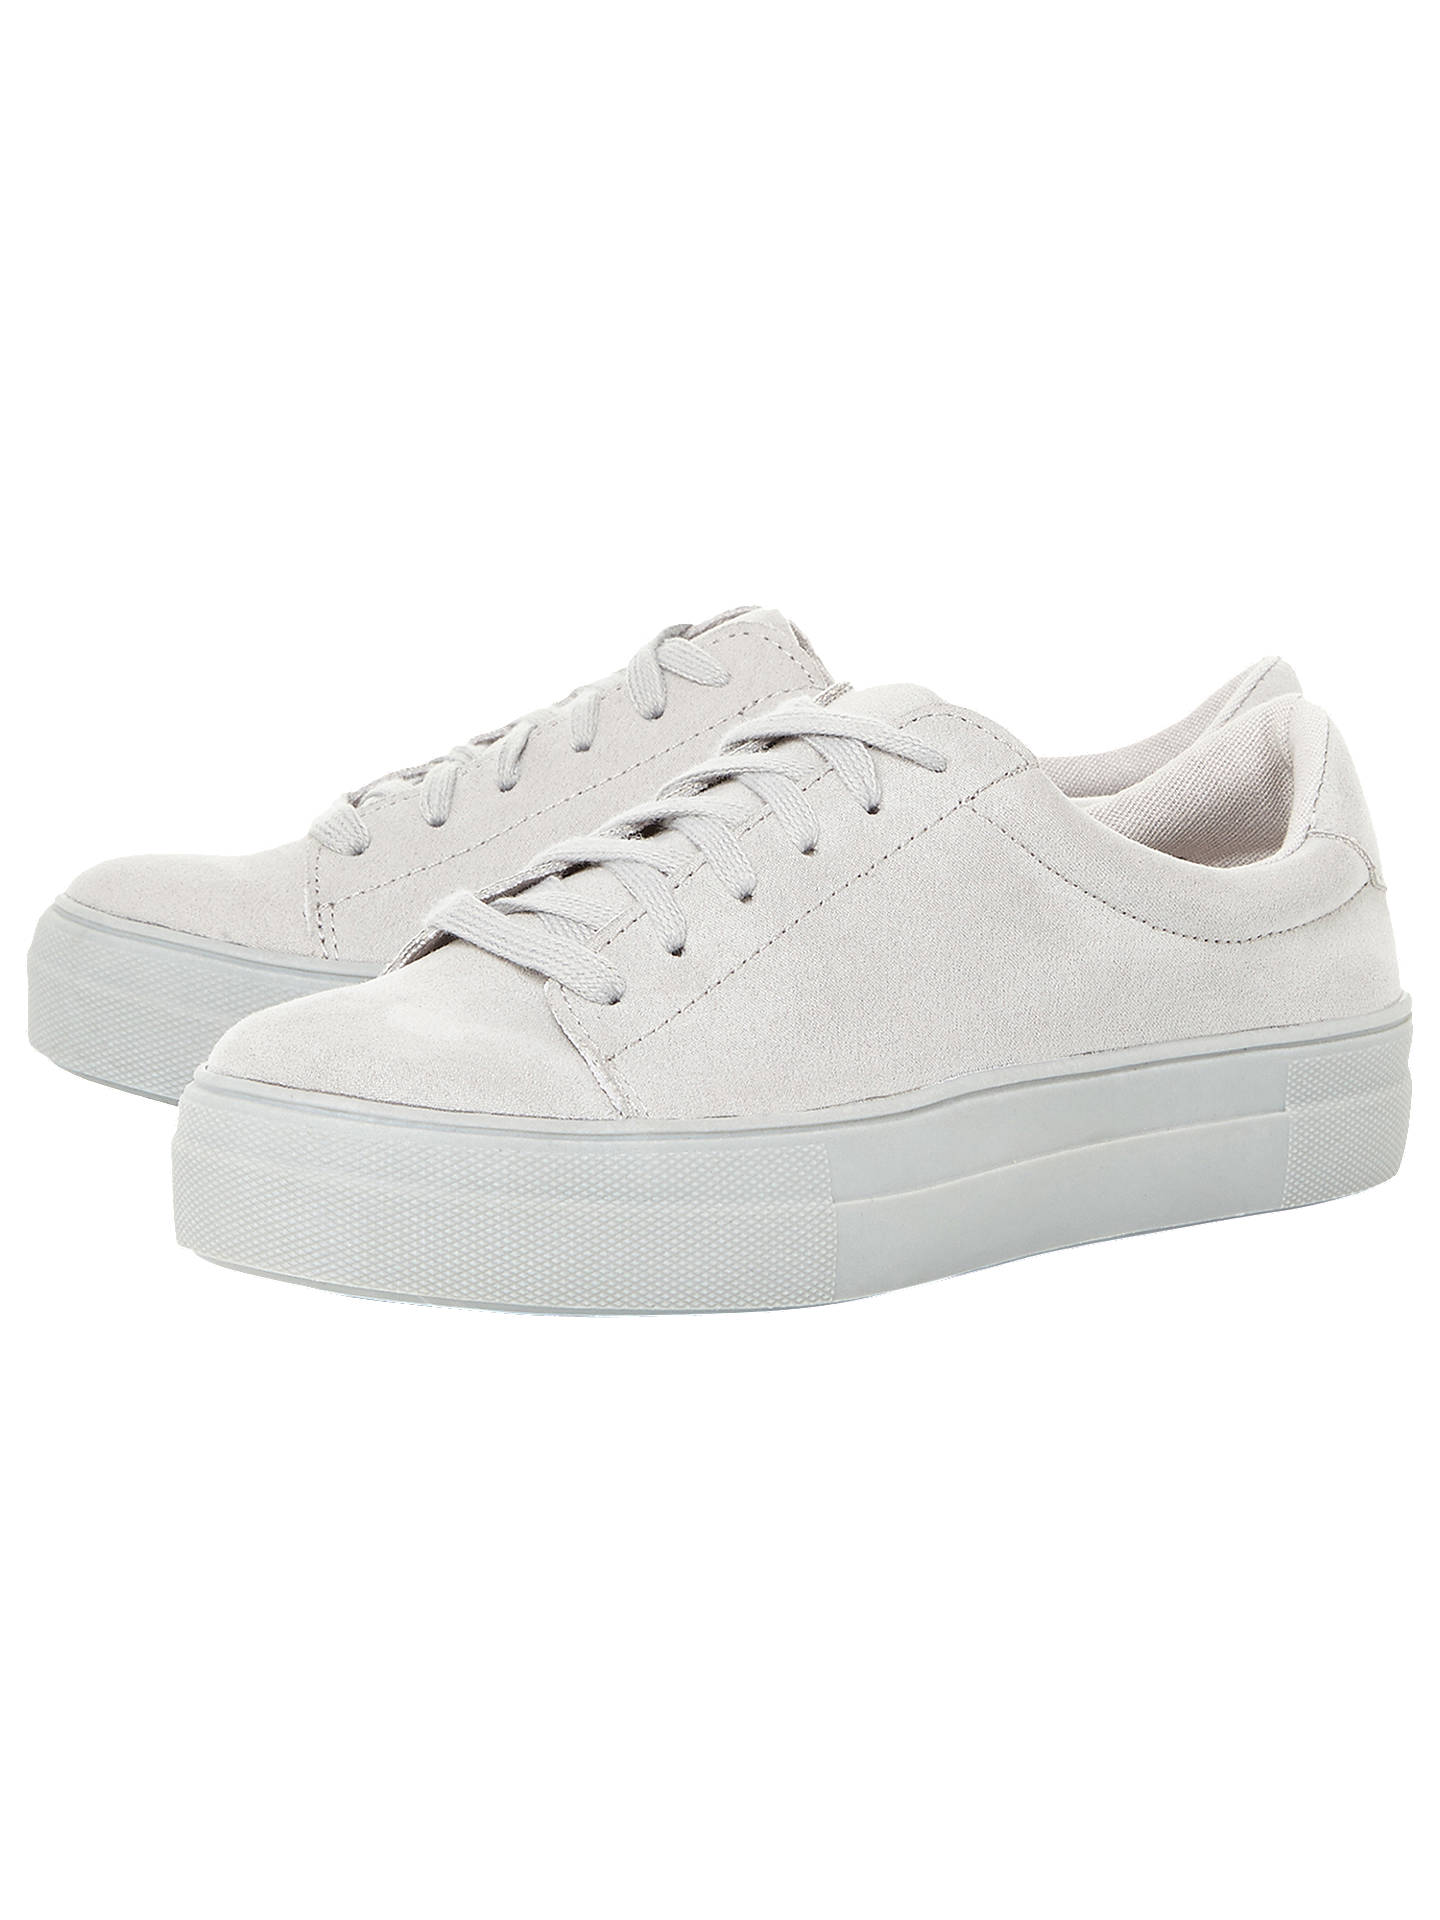 c276d5d358f Steve Madden Brody Lace Up Flatform Trainers at John Lewis   Partners